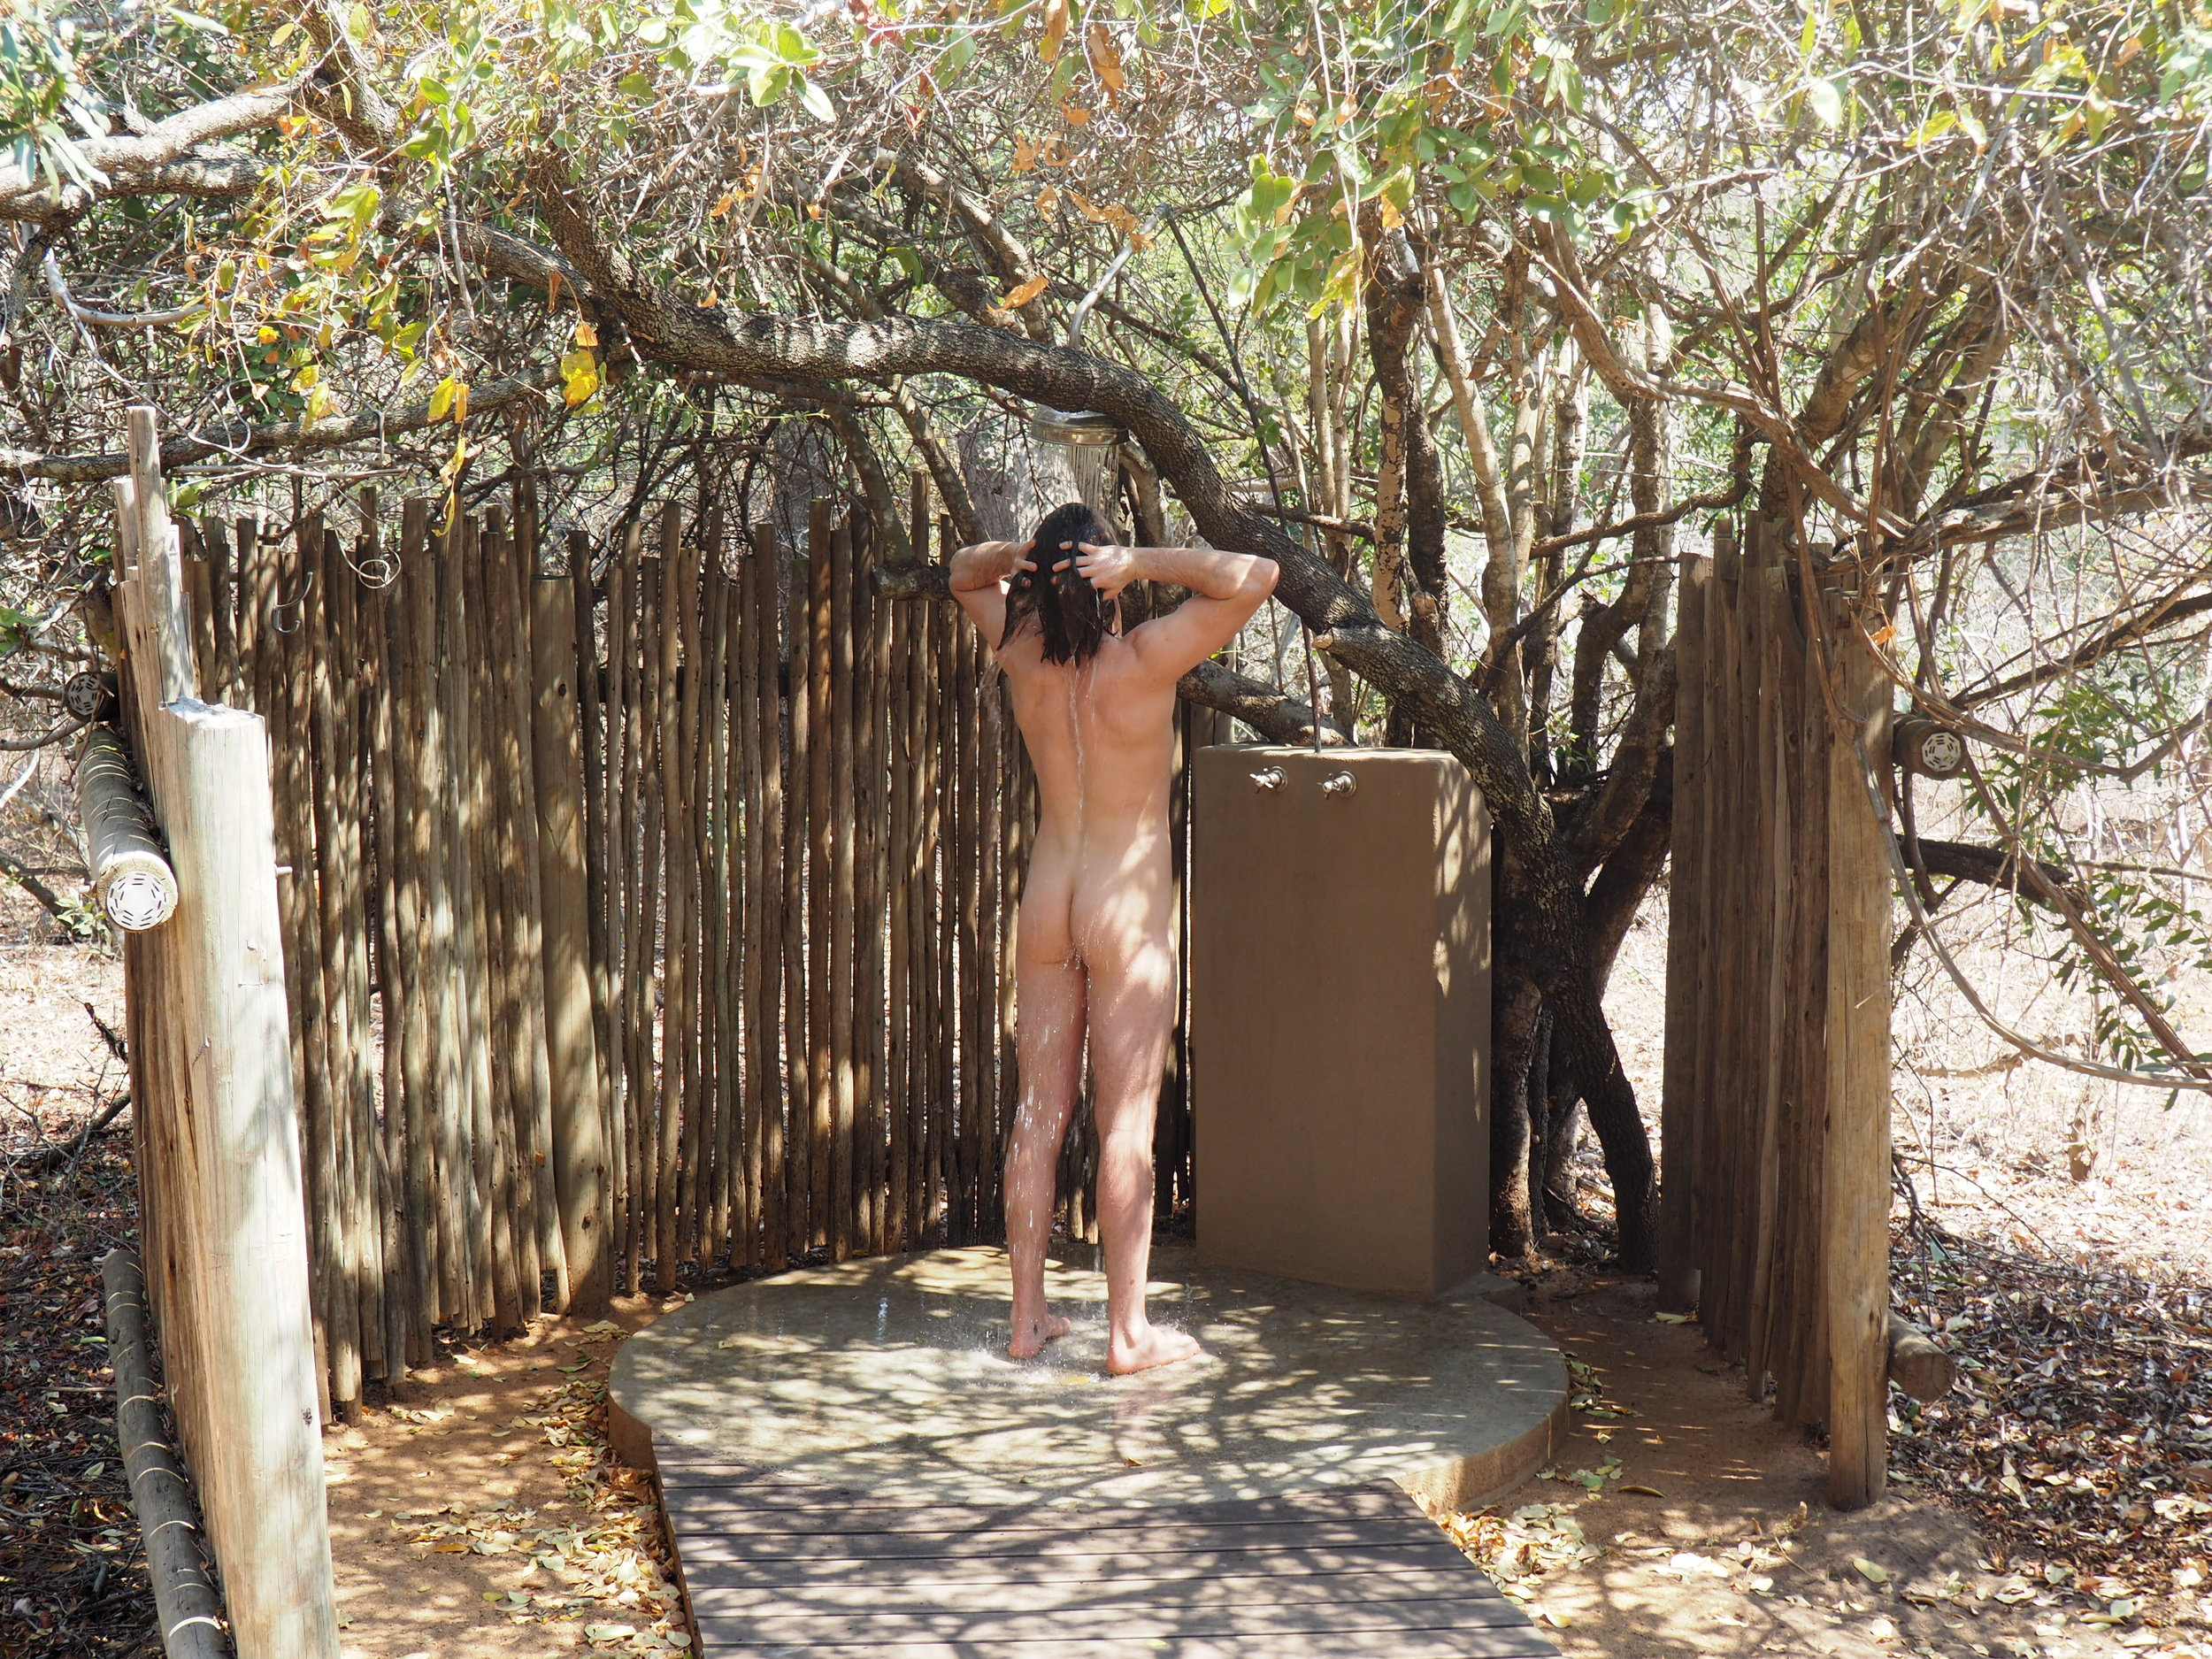 outdoor shower feat lawson.JPG